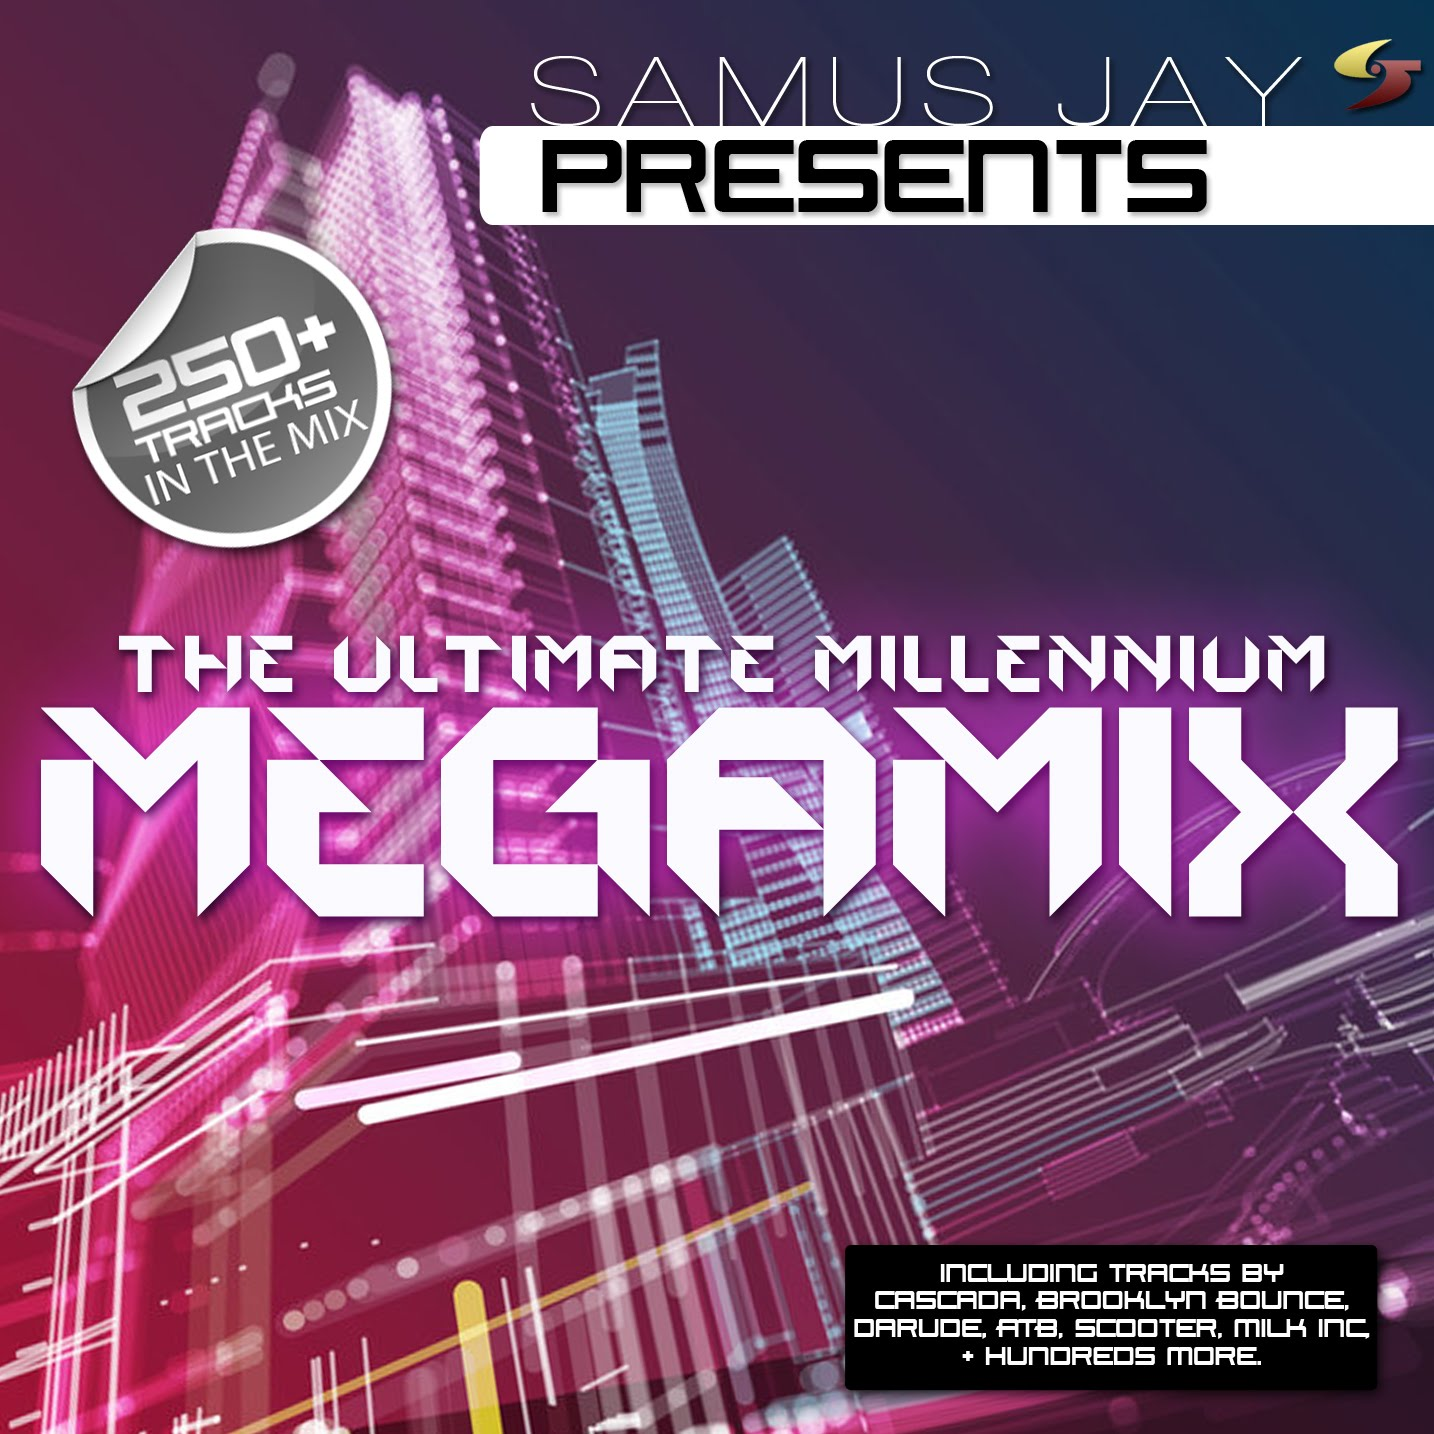 Samus Jay - The Ultimate Millennium Megamix